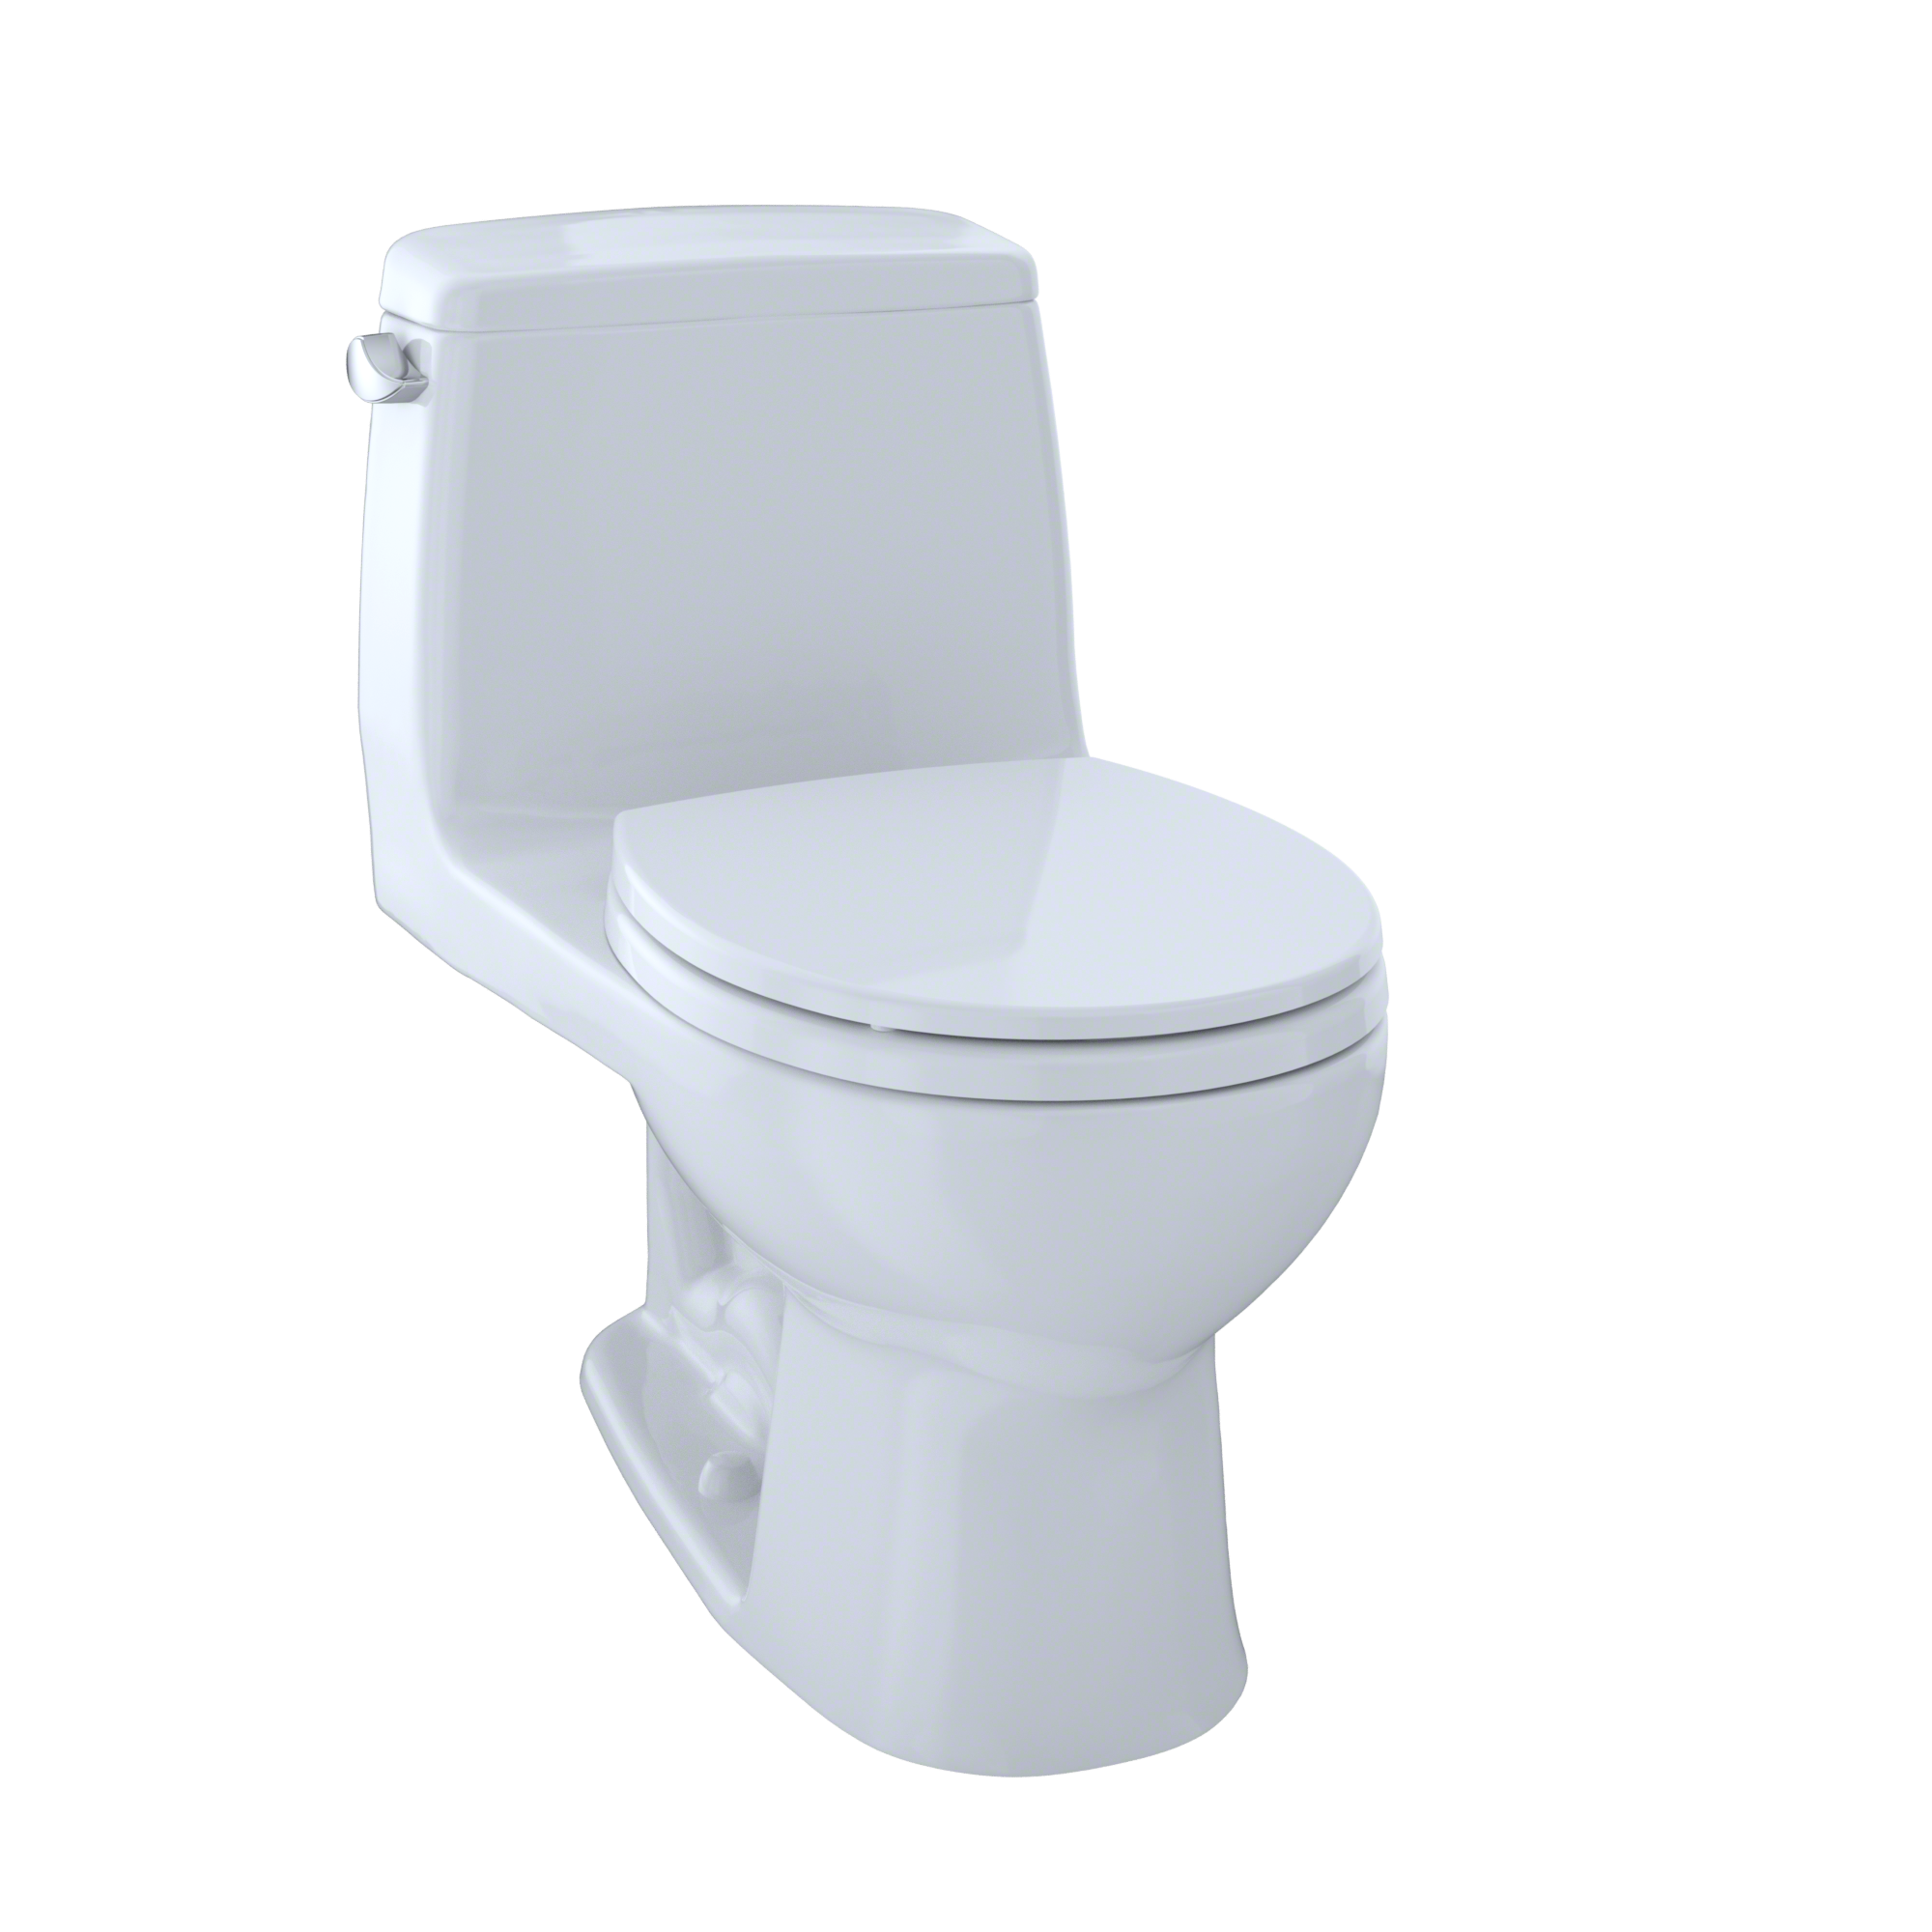 TOTO? Eco UltraMax? One-Piece Round Bowl 1.28 GPF Toilet, Cotton White - MS853113E#01